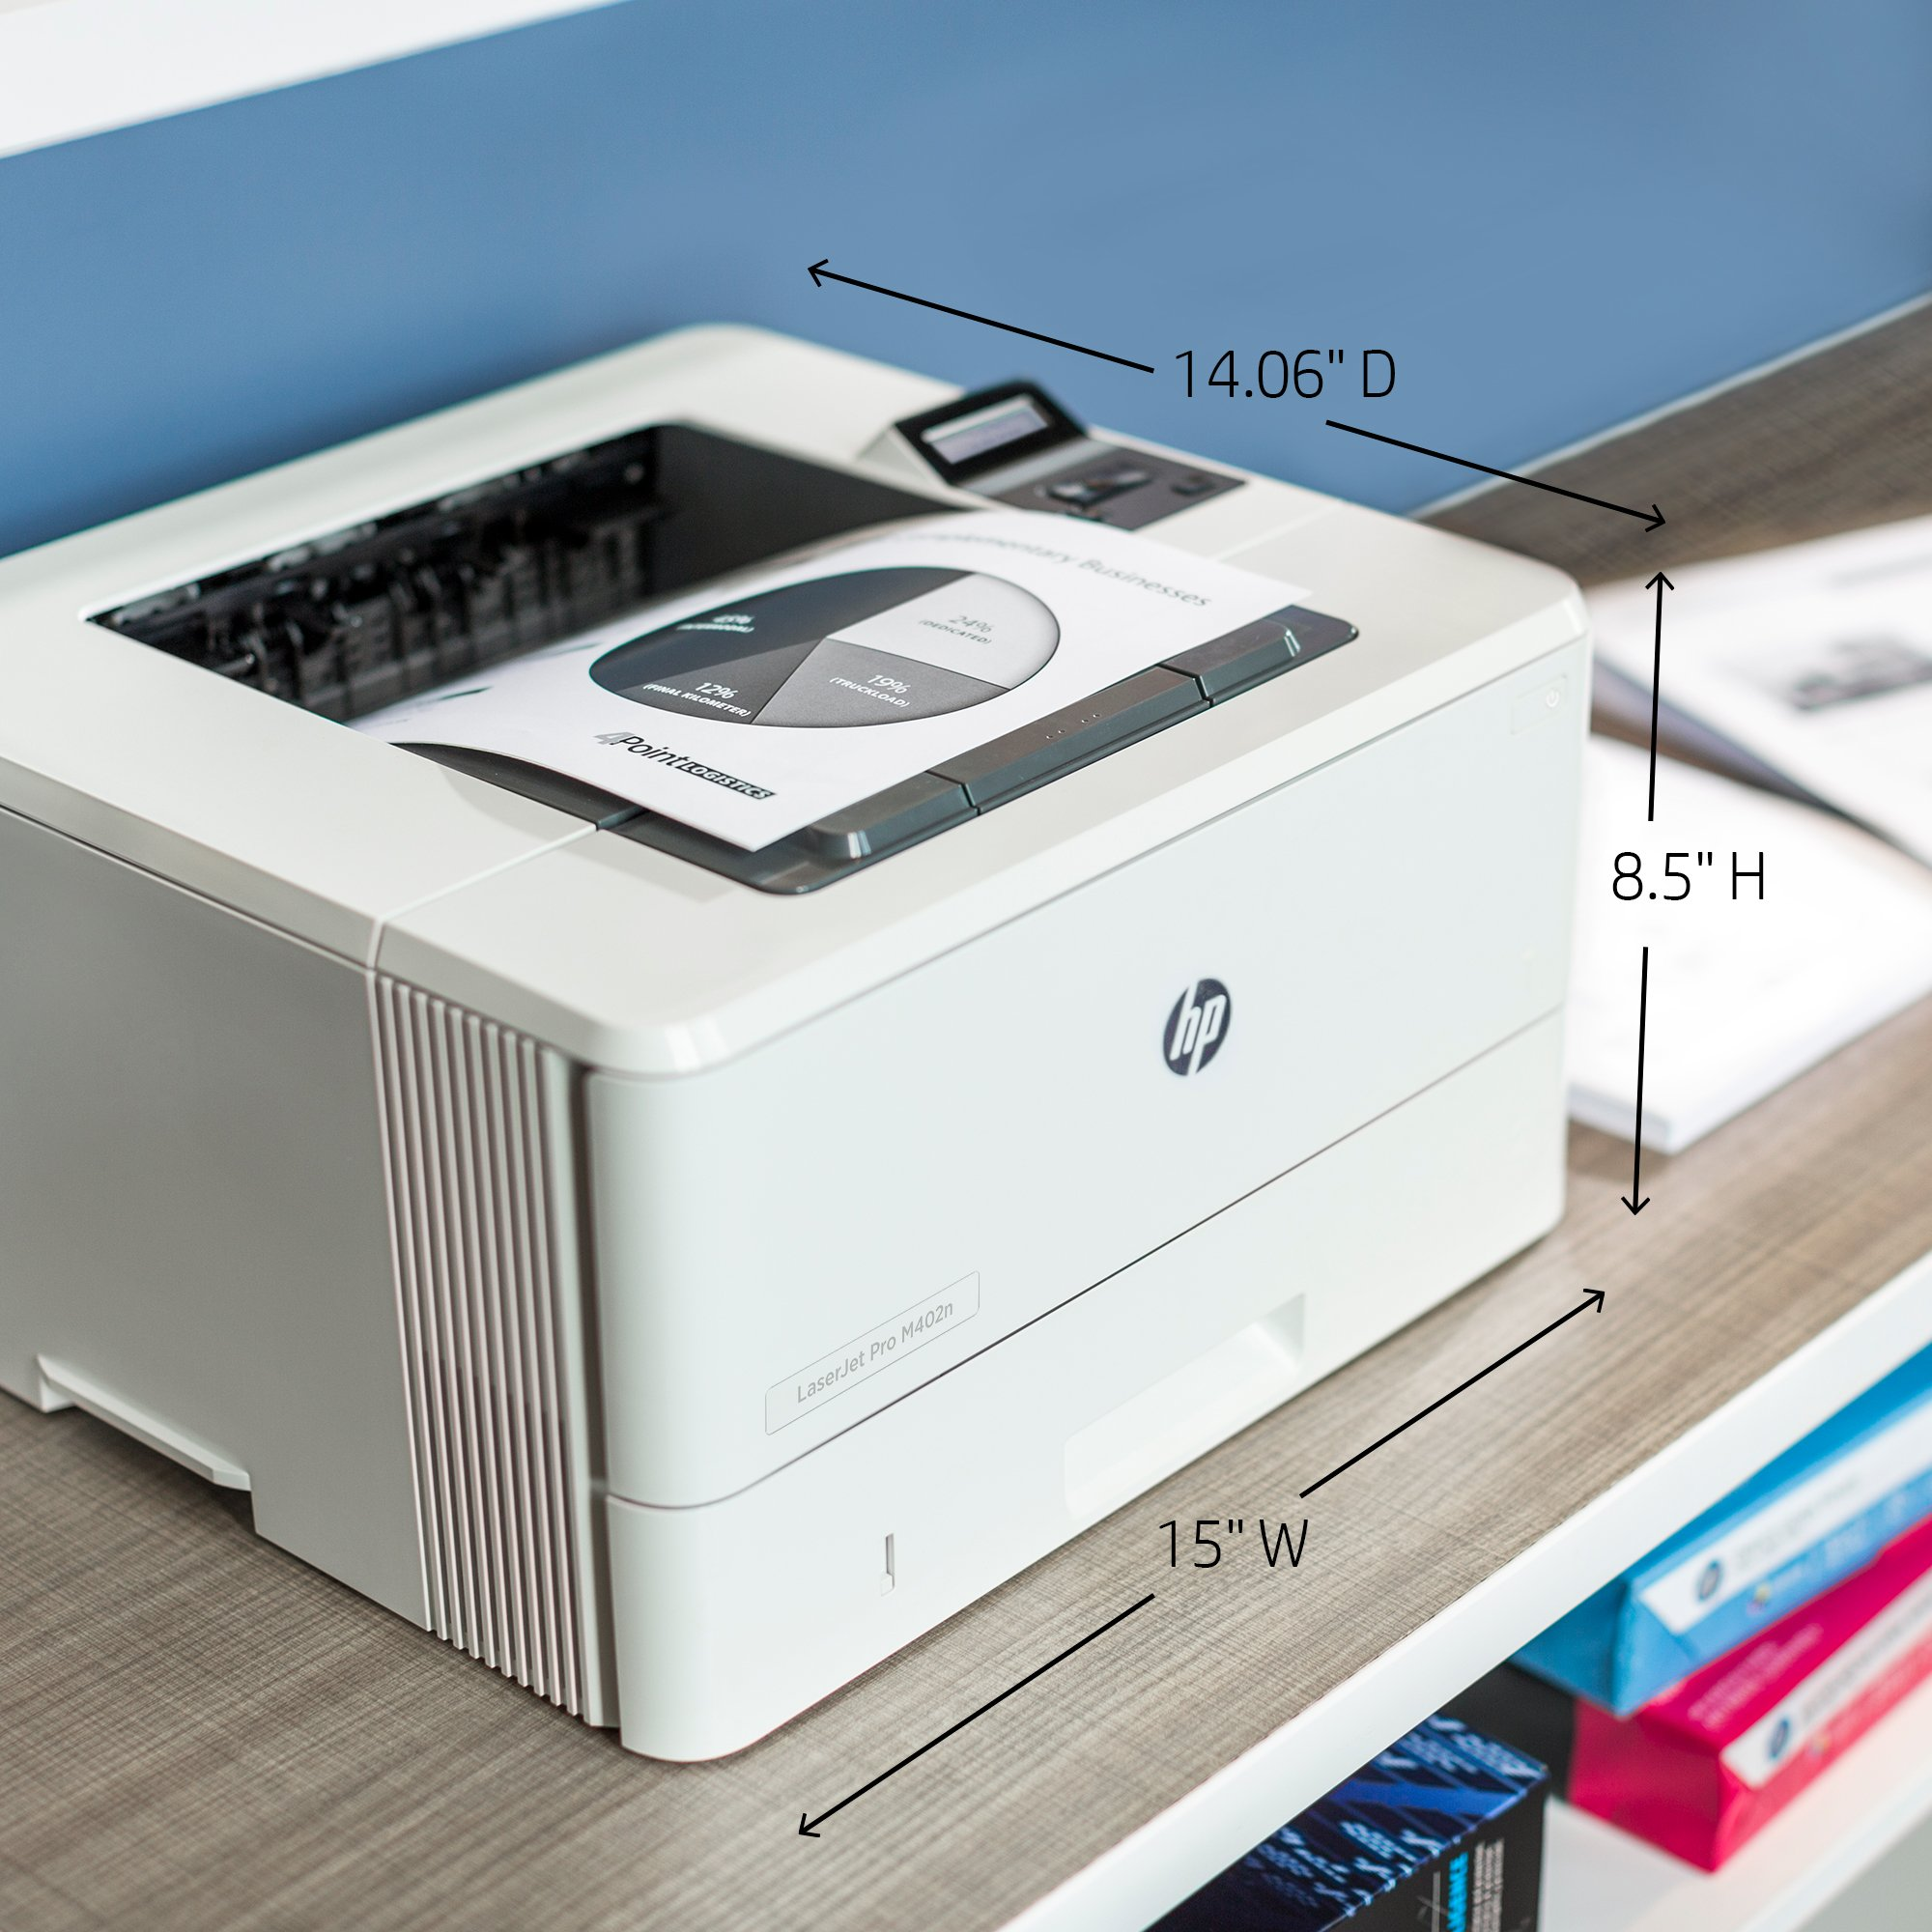 HP LaserJet Pro M402n Laser Printer with Built-in Ethernet, Amazon Dash Replenishment ready (C5F93A) by HP (Image #3)